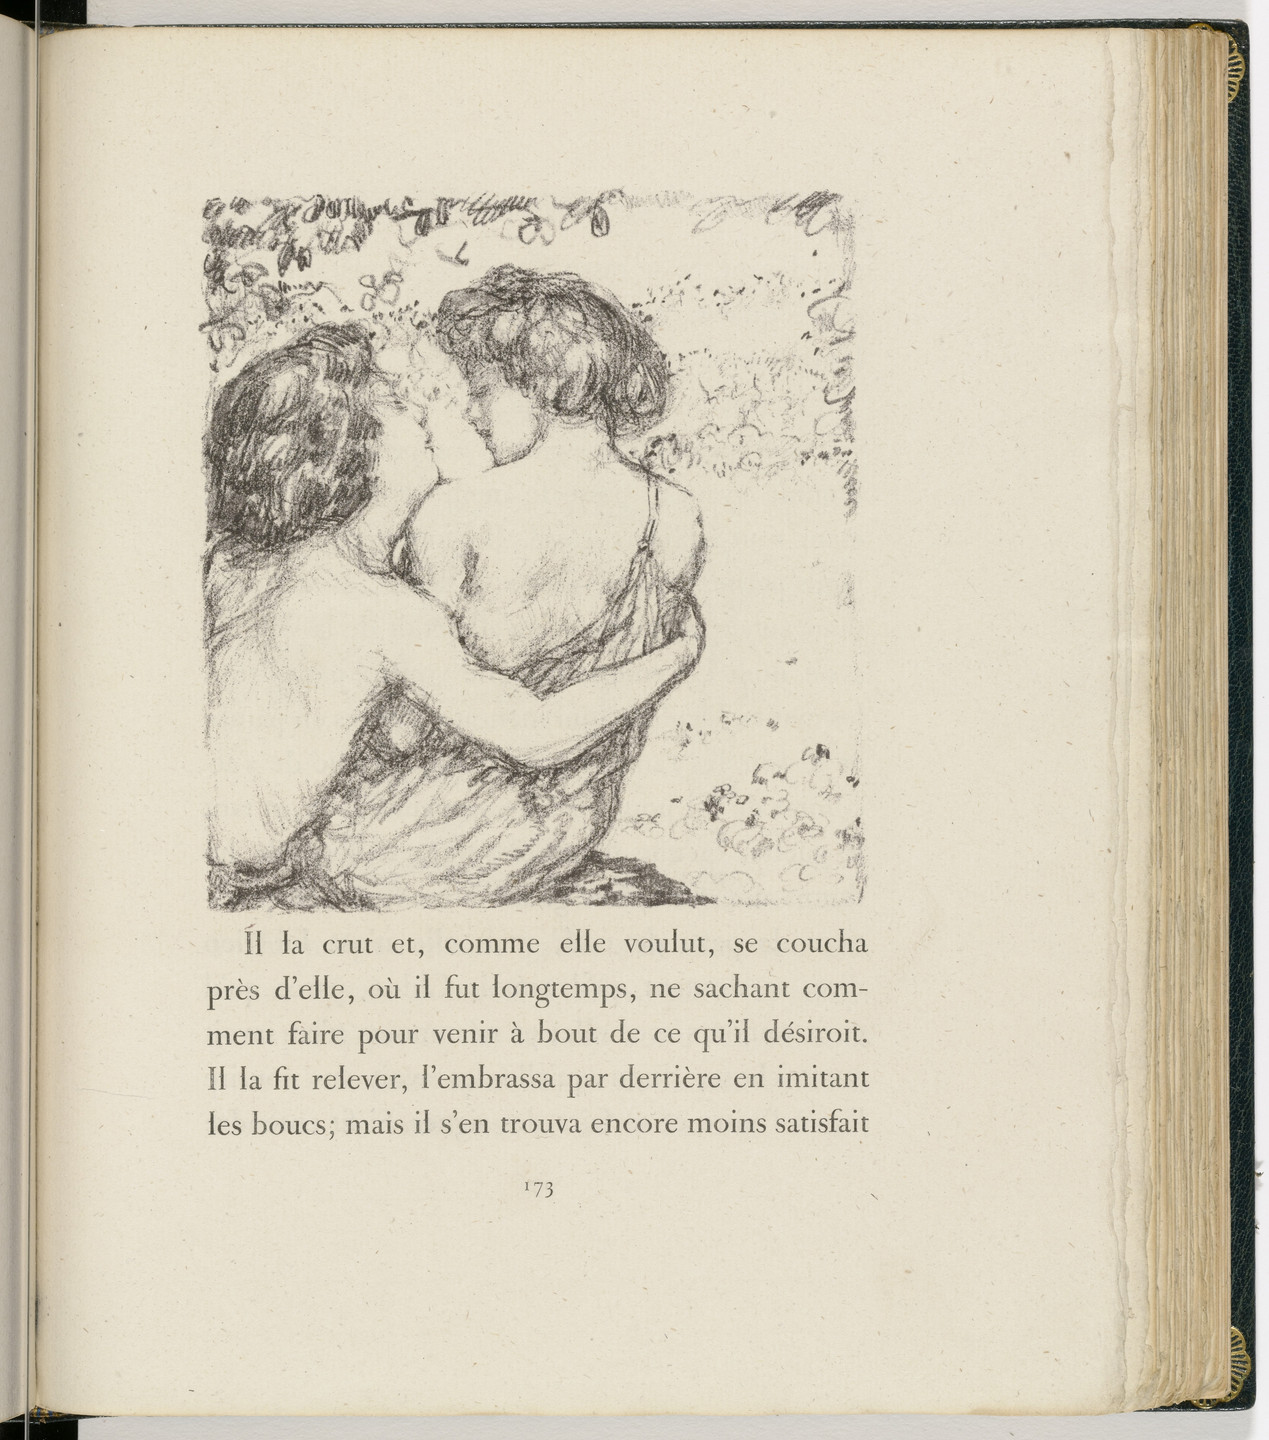 Pierre Bonnard. In-text plate (page 173) from Daphnis et Chloé. 1902